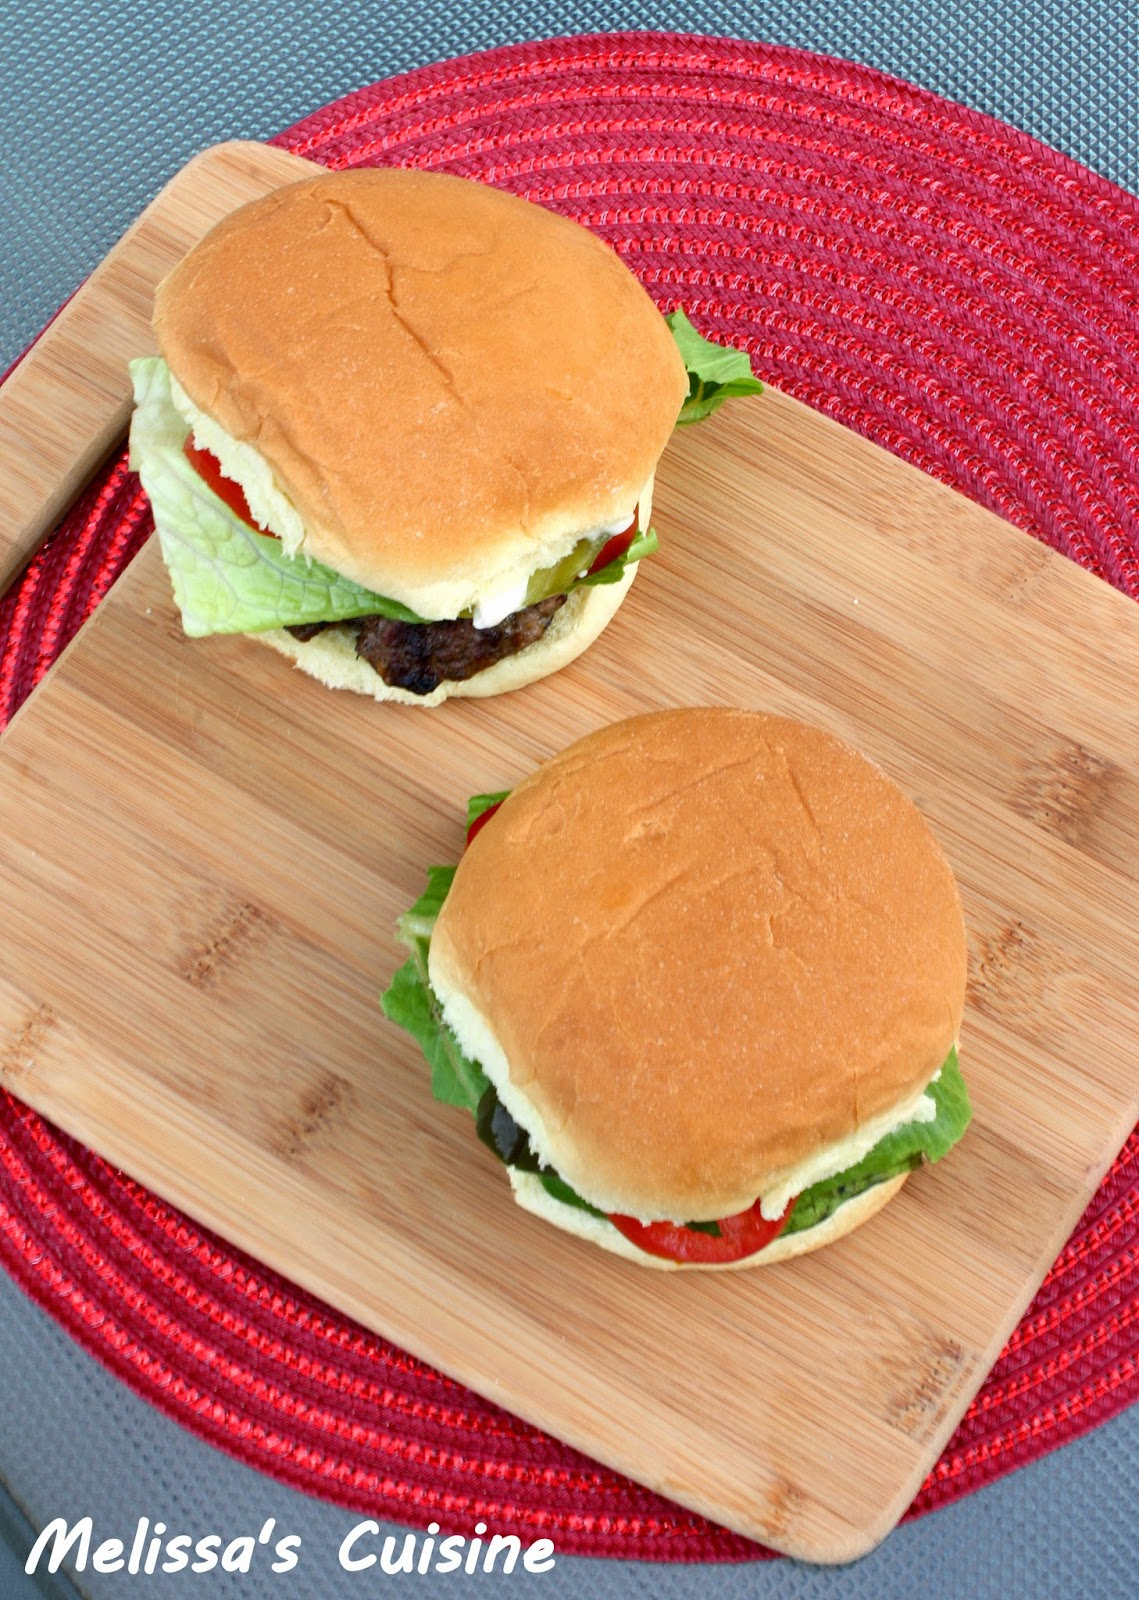 Melissa's Cuisine: Bacon Cheeseburgers {Flashback Friday}